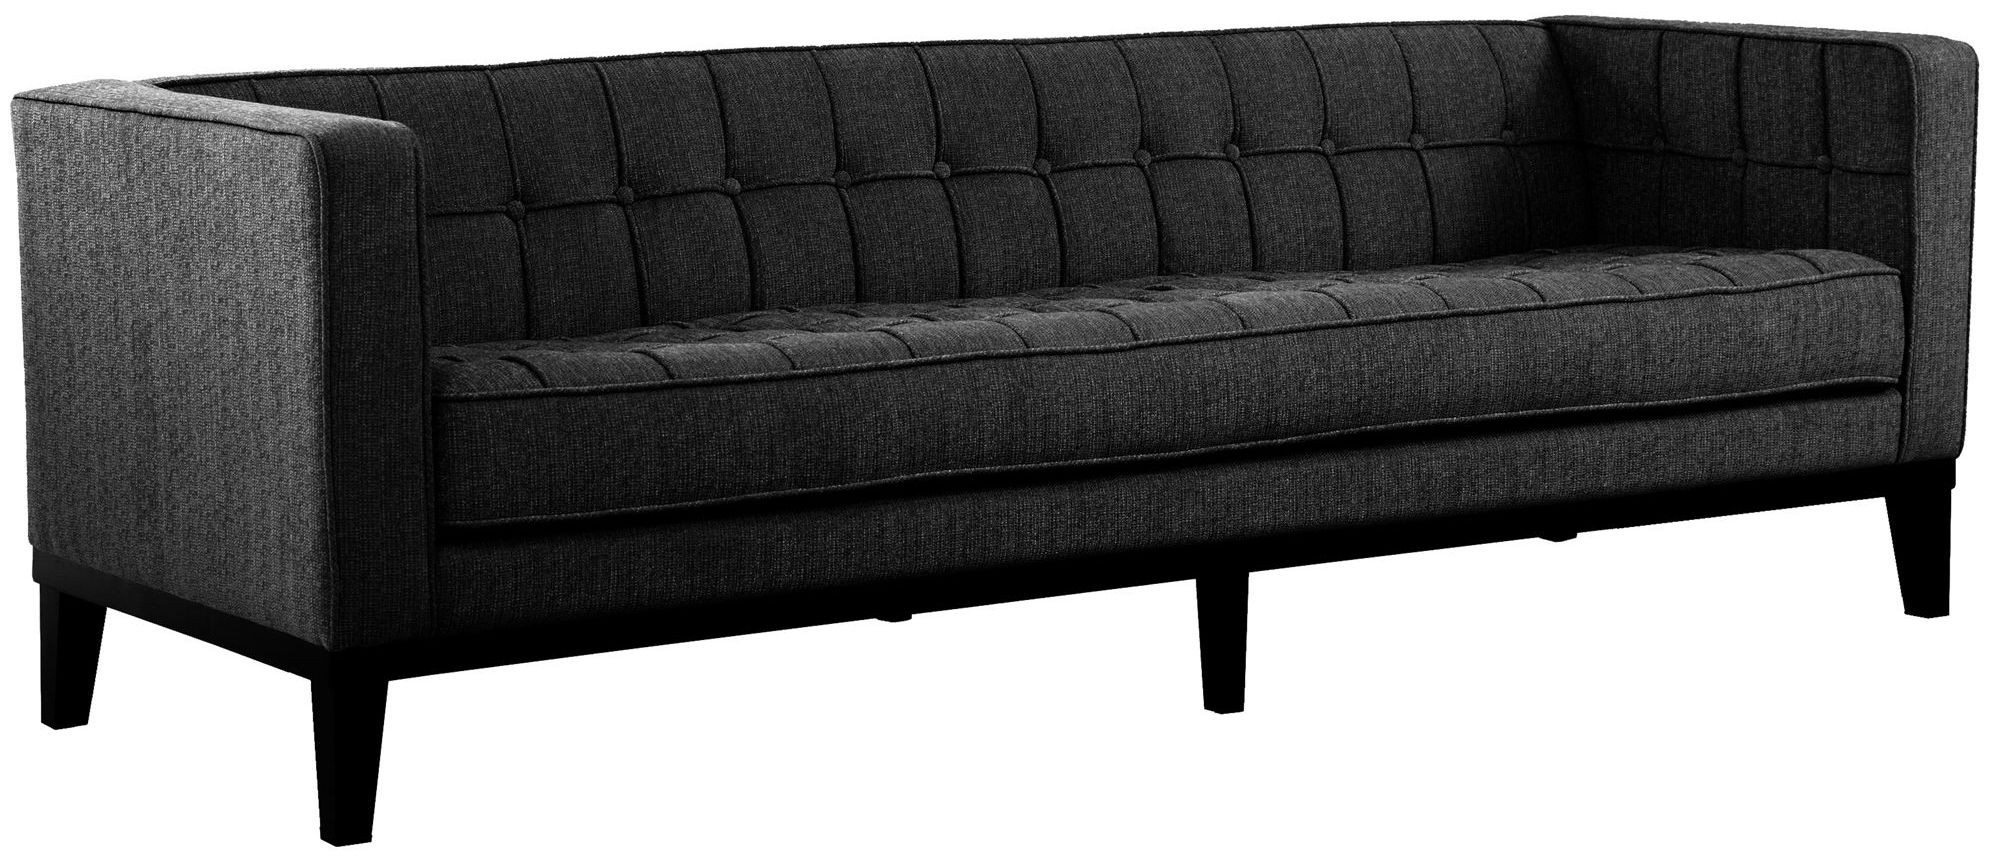 loft charcoal sofa bed blue leather reclining and loveseat roxbury fabric lc10103ch armen living